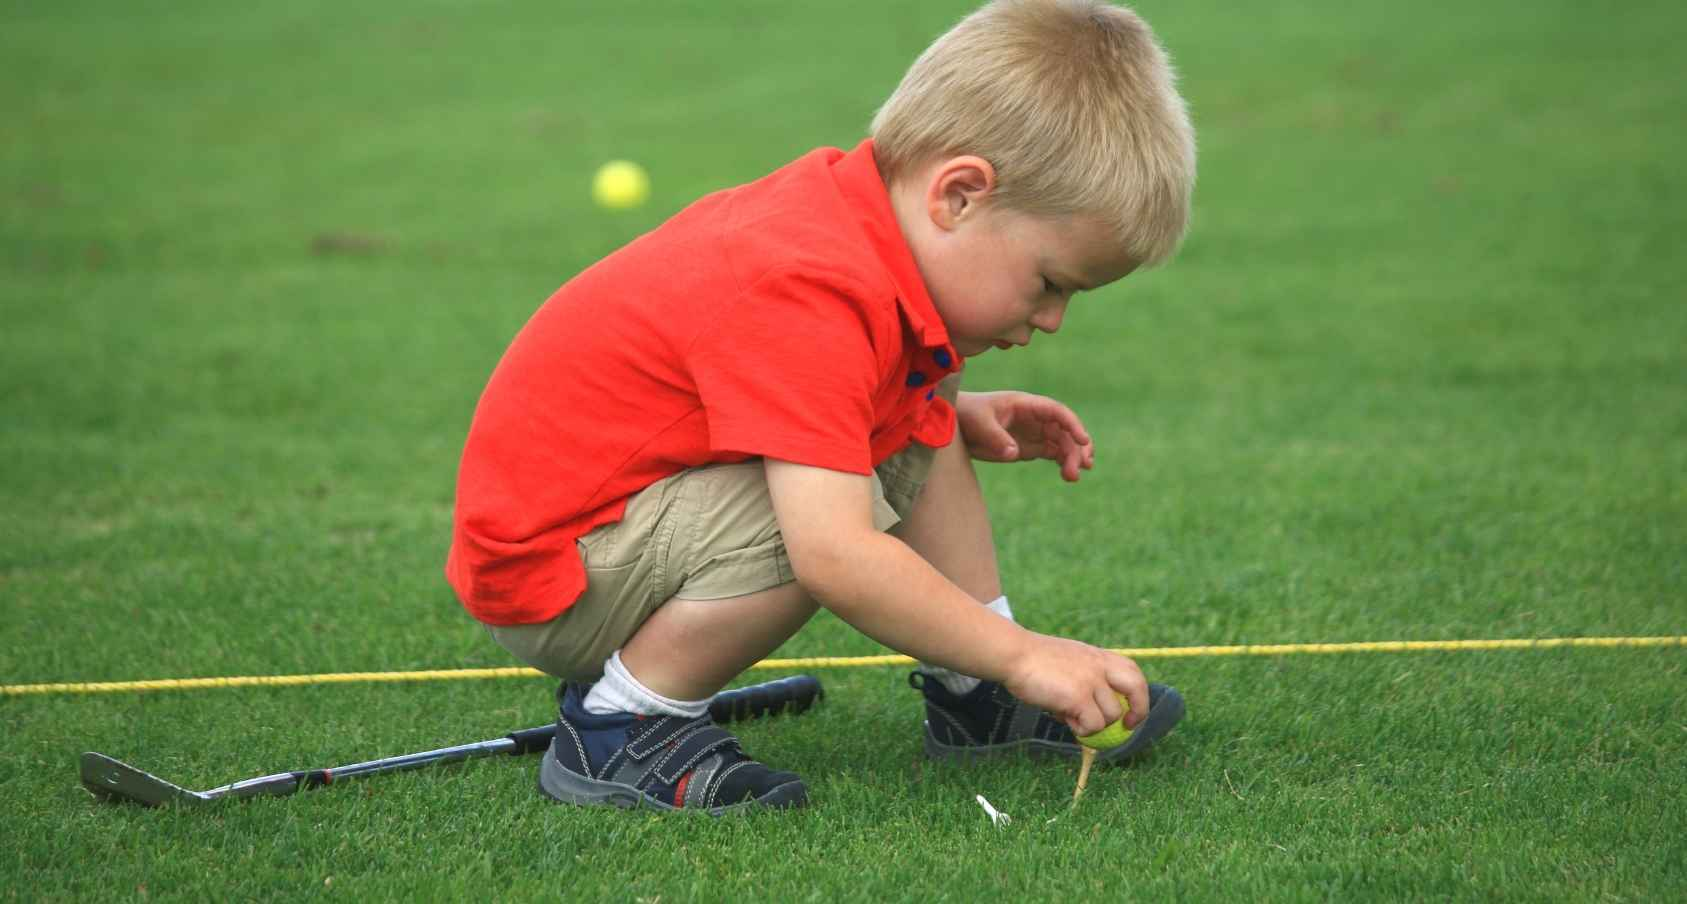 'Drive Out Child Abuse' Celebrity Golf Scramble 2021 image